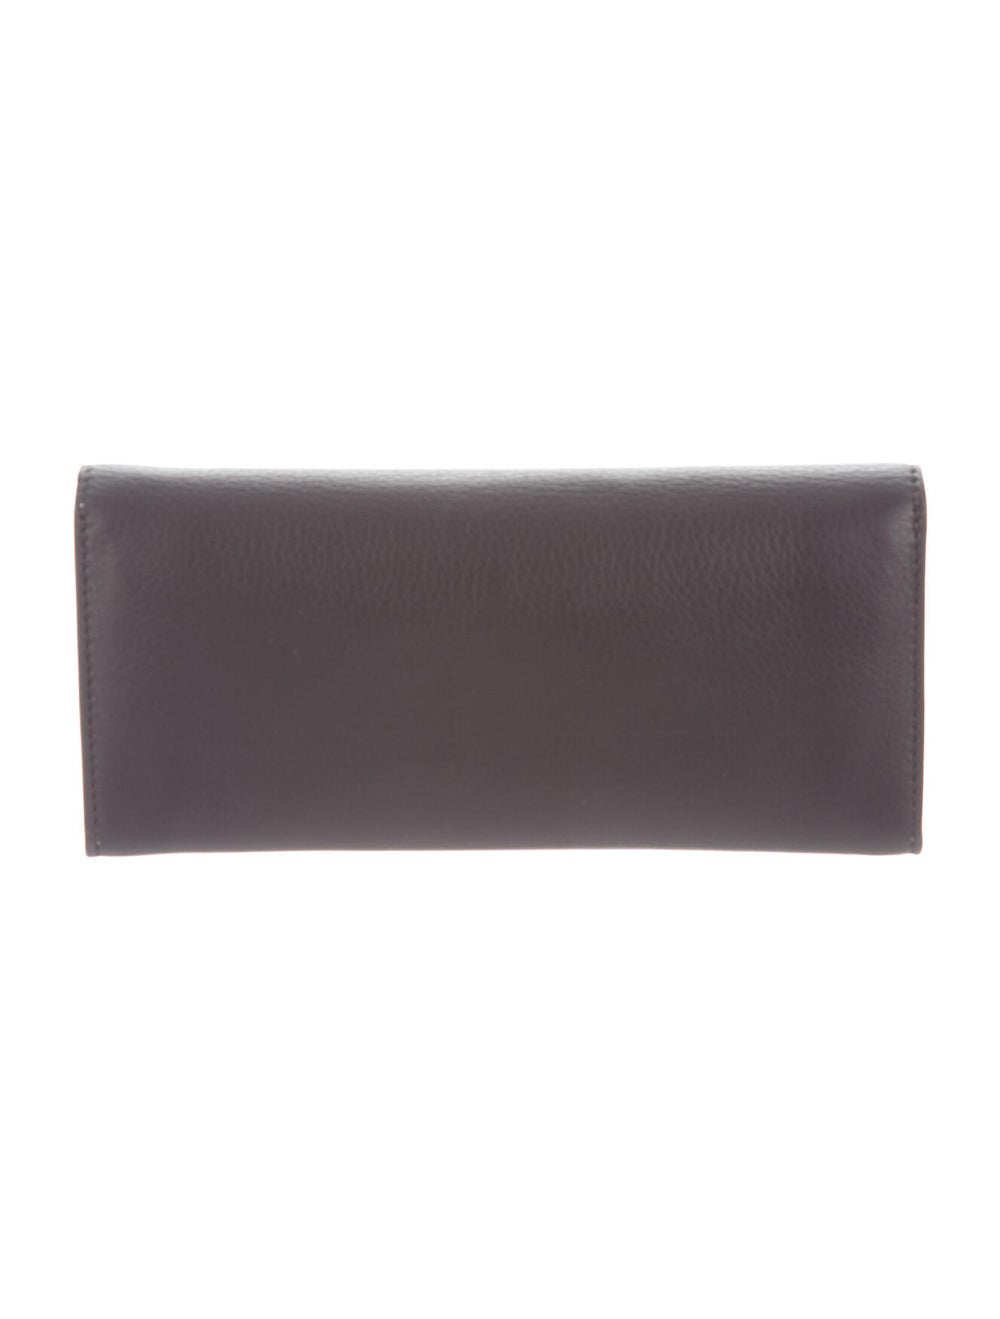 Burberry Leather Continental Wallet gold - image 4